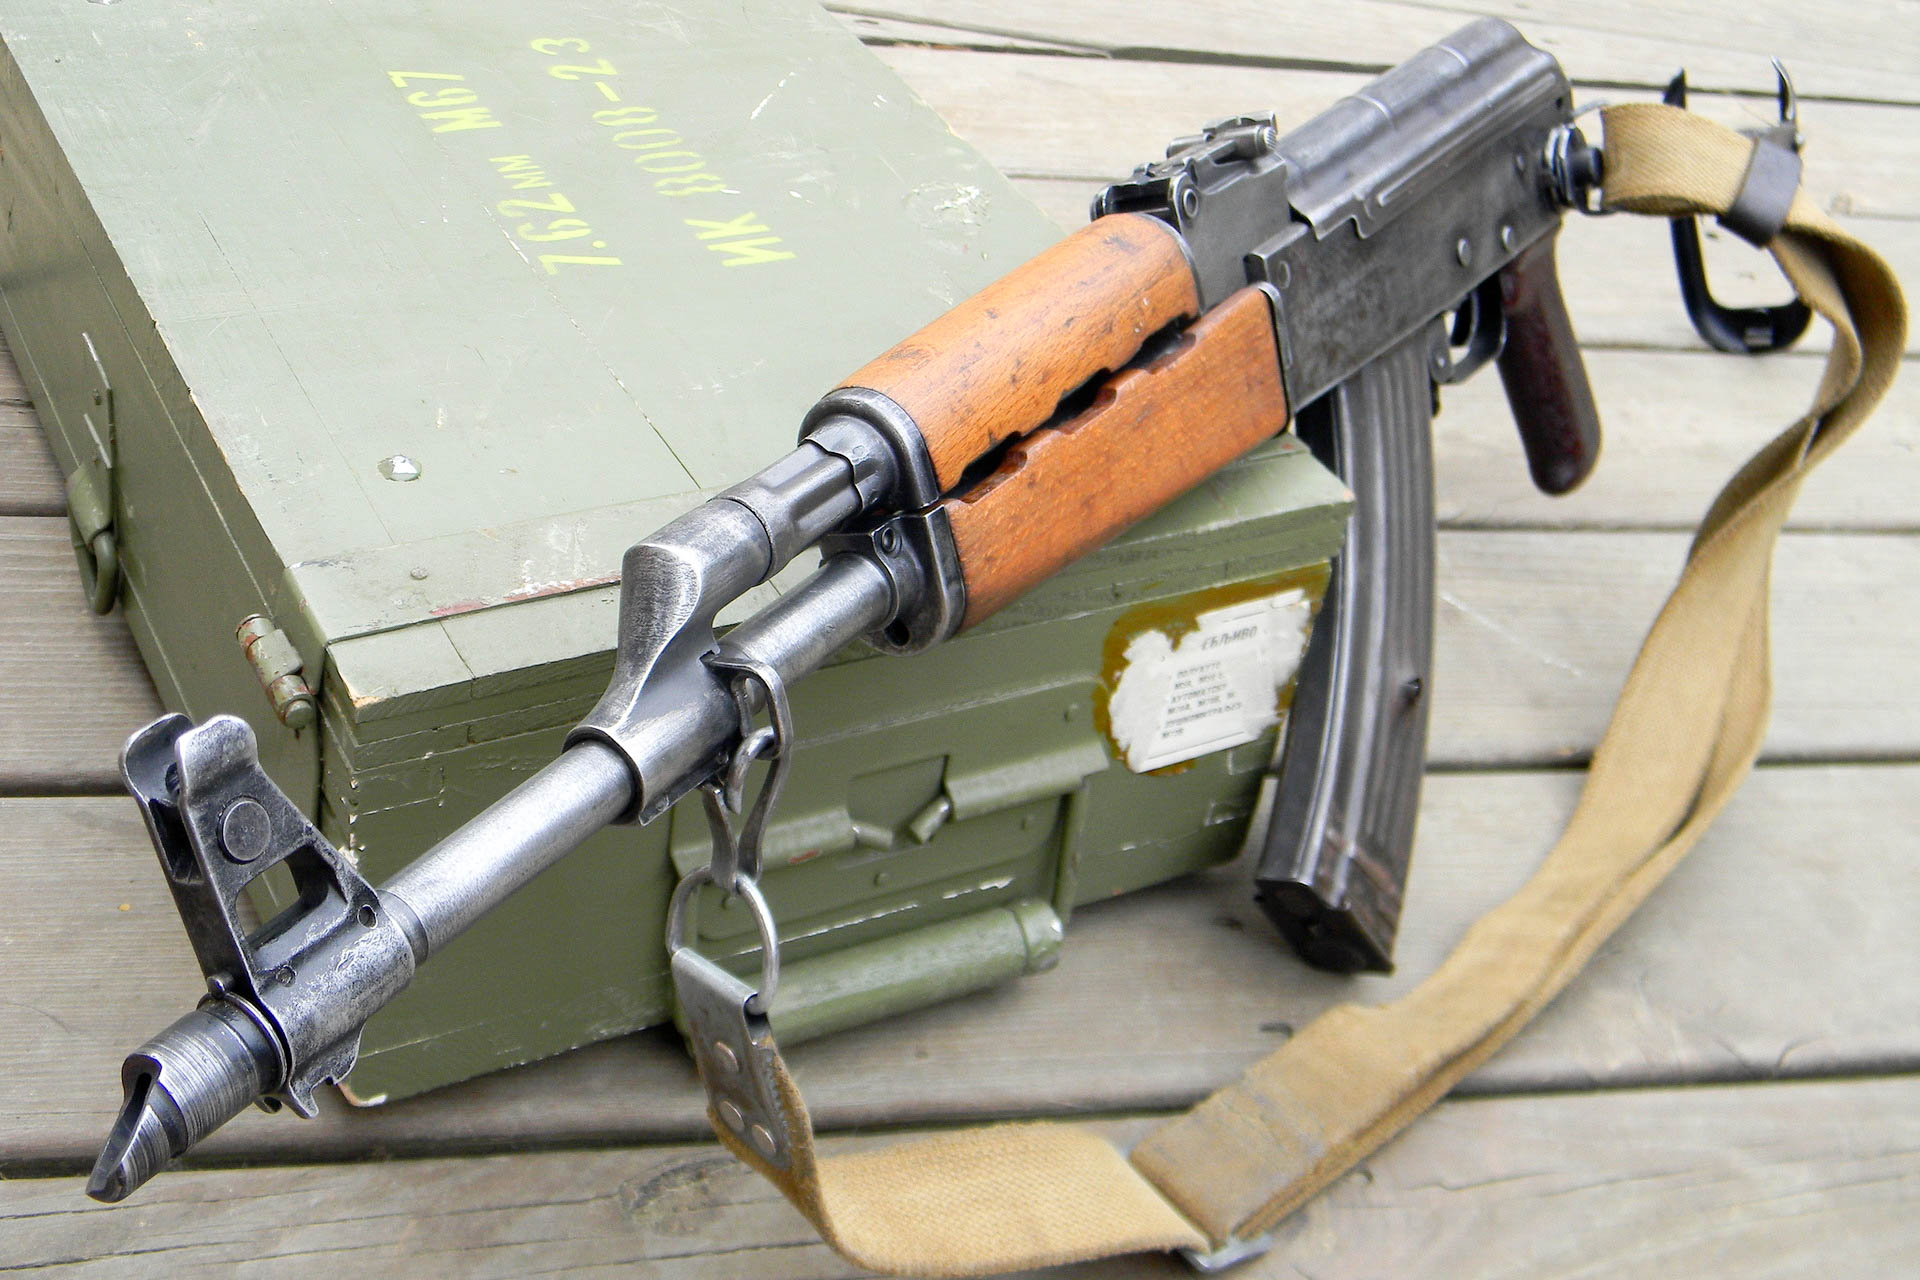 Ak 47 Awesome Hd Wallpapers Pictures In High Resolution All Hd